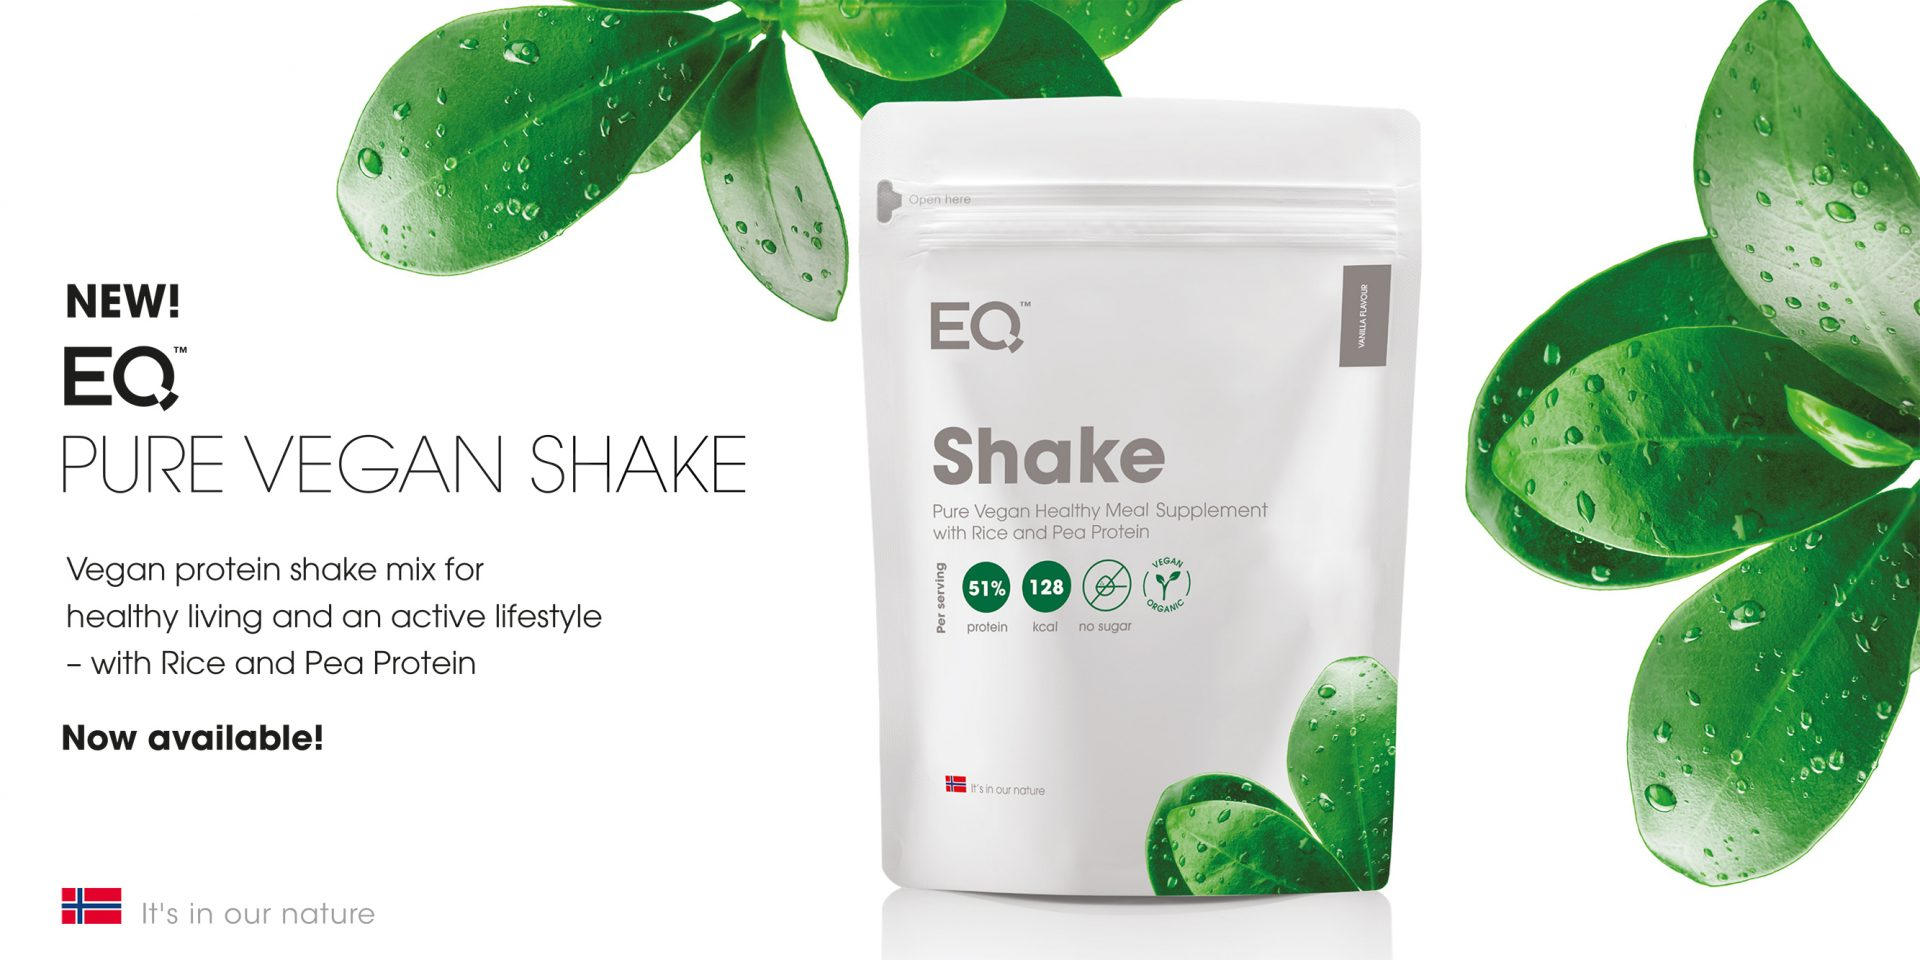 EQ Pure Vegan Shake